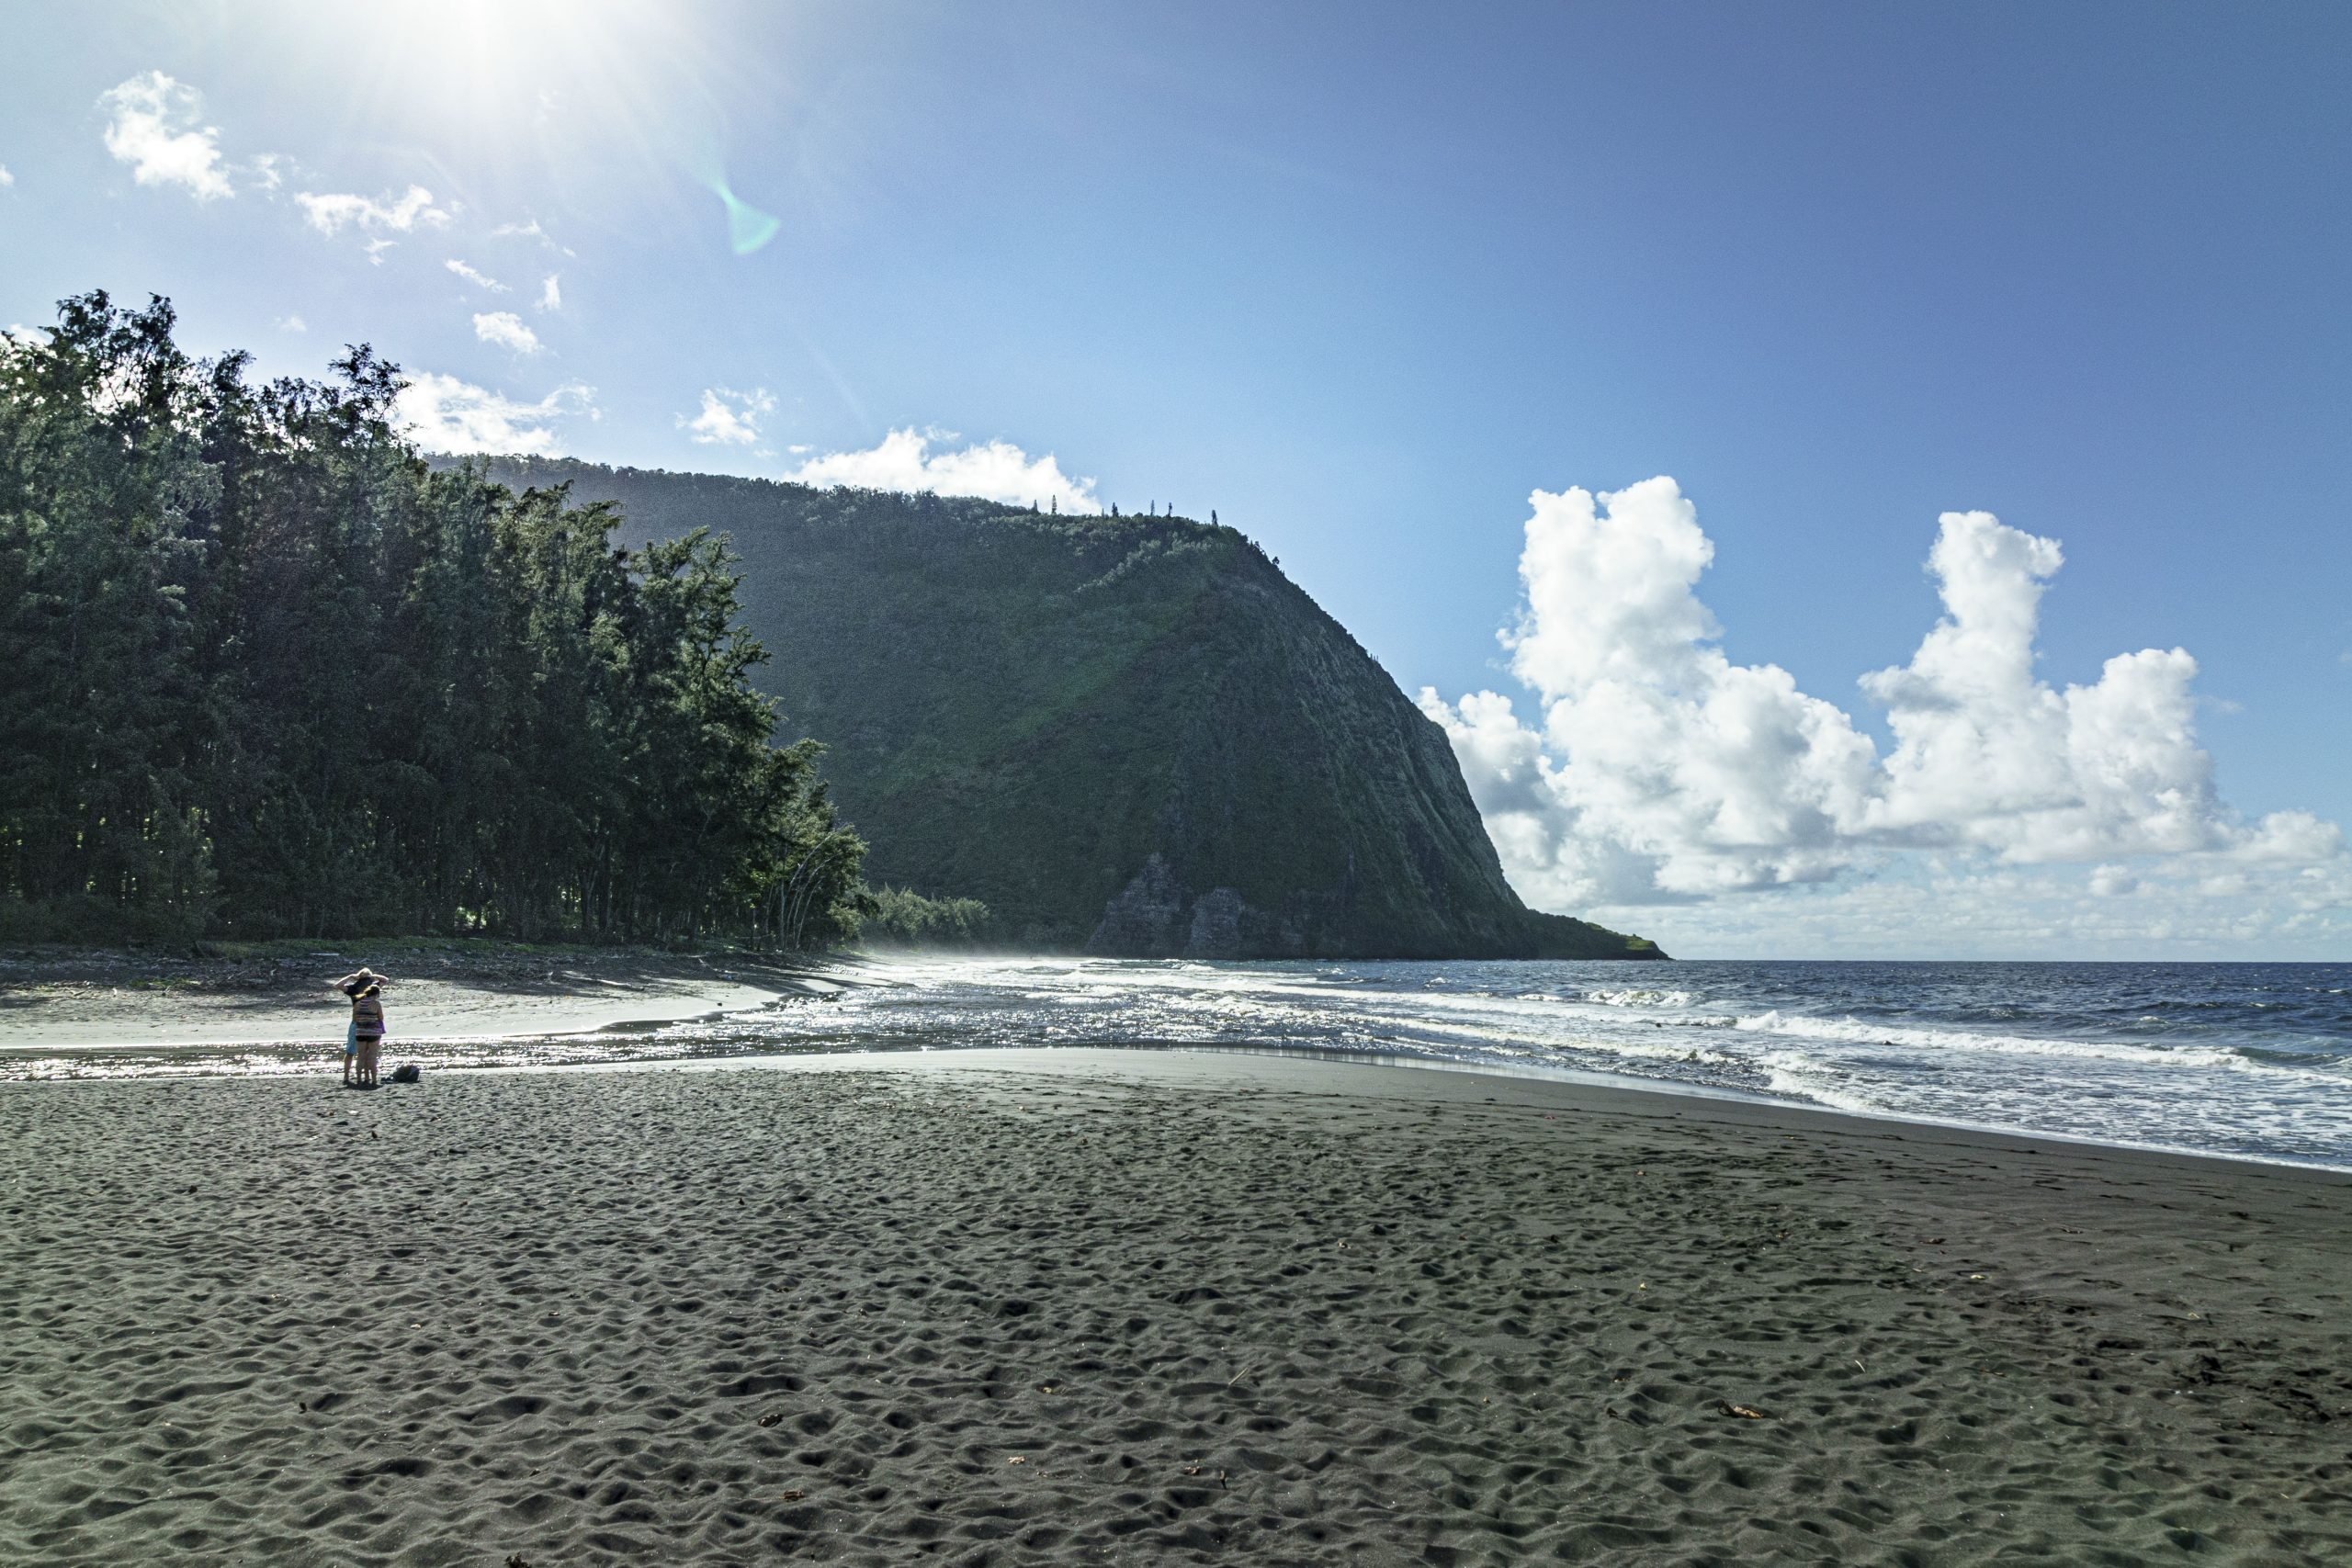 Hiilawe Black Sand Beach in Hawaii with Intentionally Lost and Kevin Wenning #intentionallylost